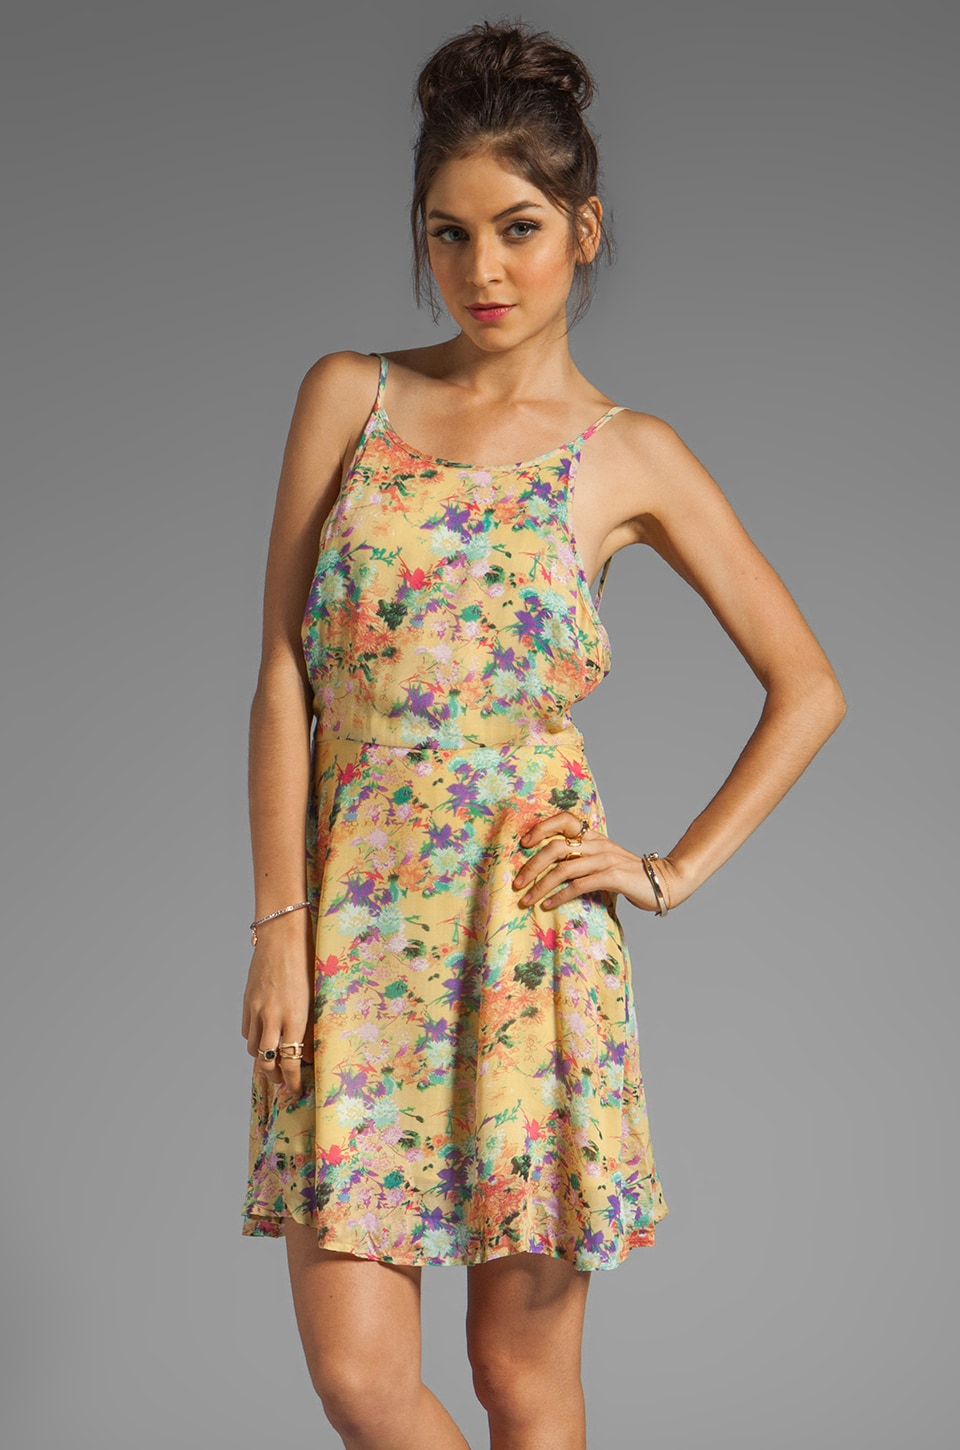 MINKPINK Summer Breeze Sundress in Multi